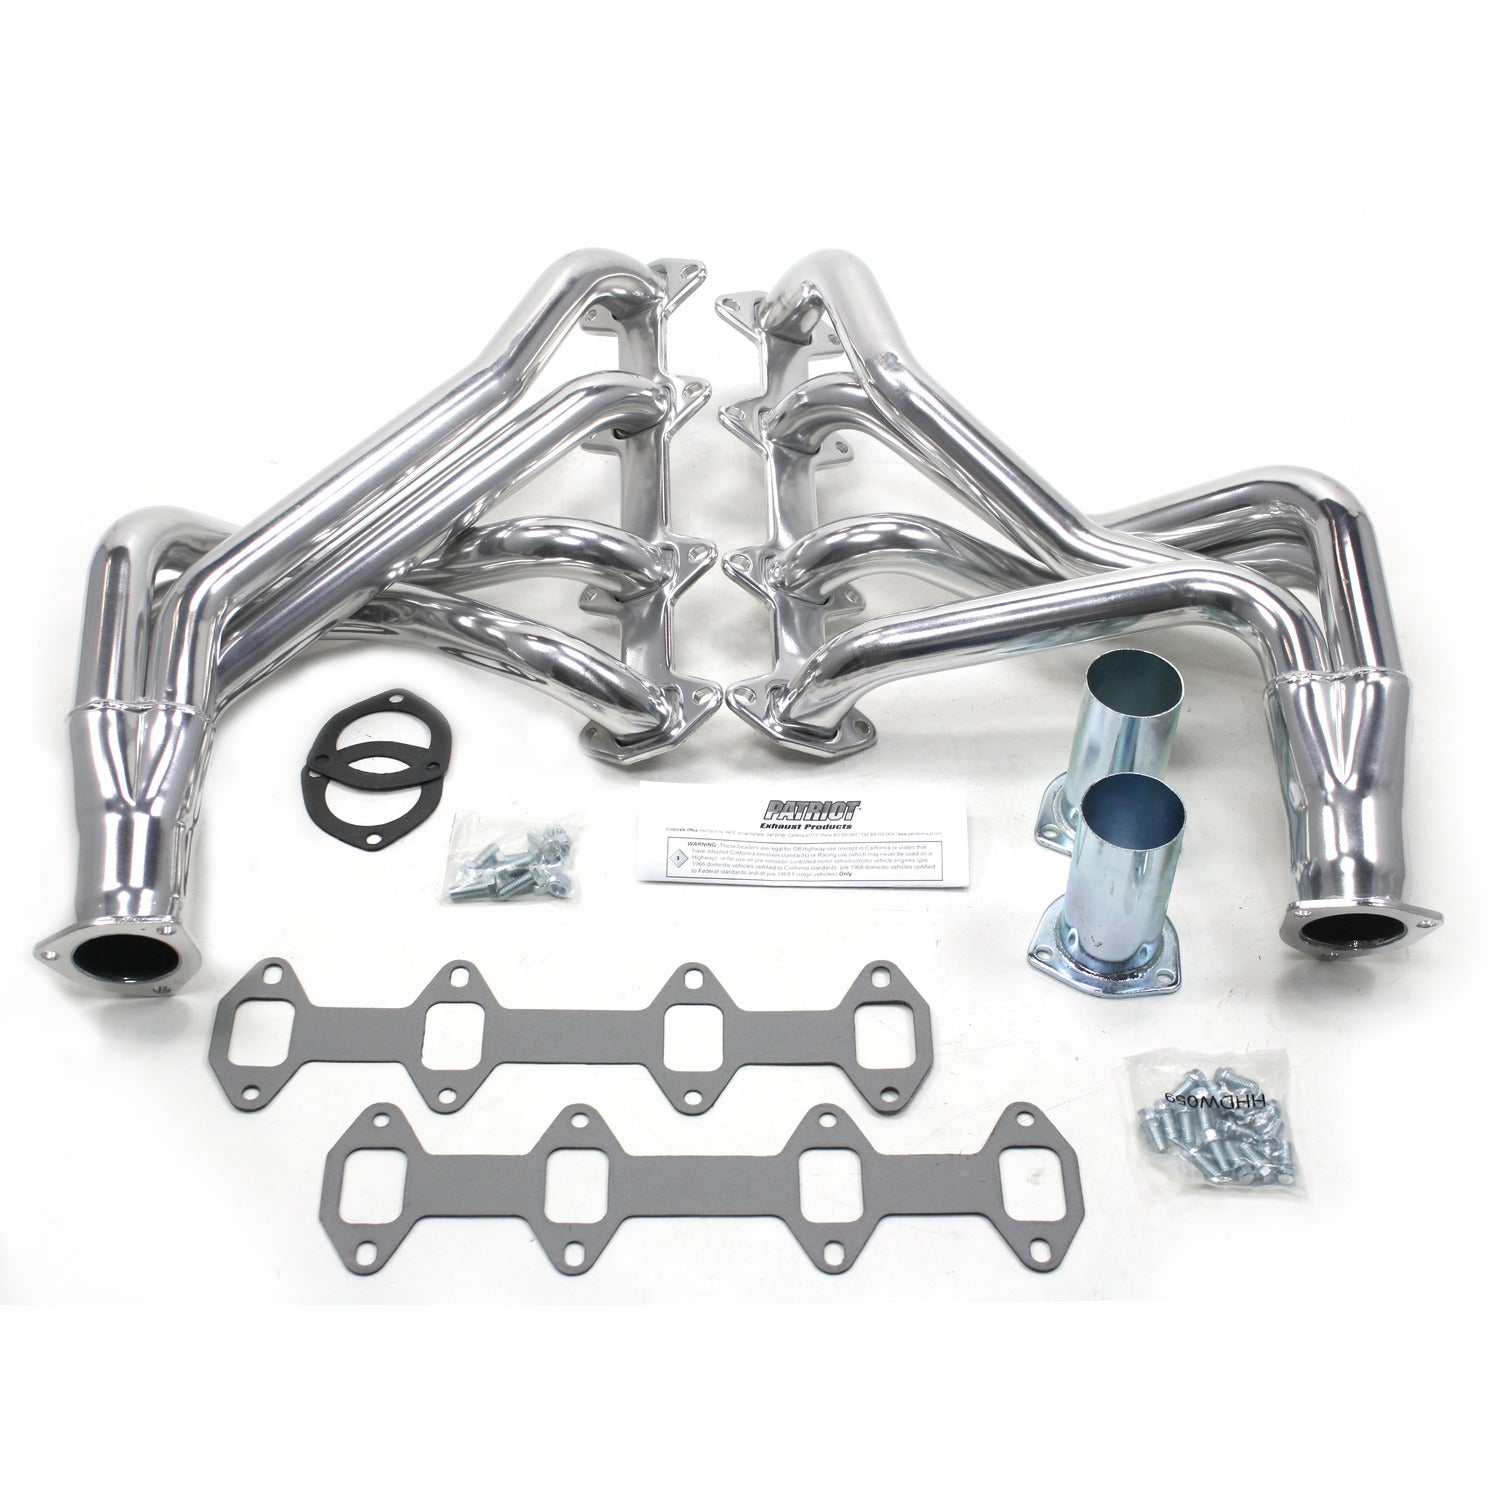 "Patriot Exhaust H8406-1 1 3/4"" Full Length Header Ford Truck FE 65-76 Metallic Ceramic Coating"